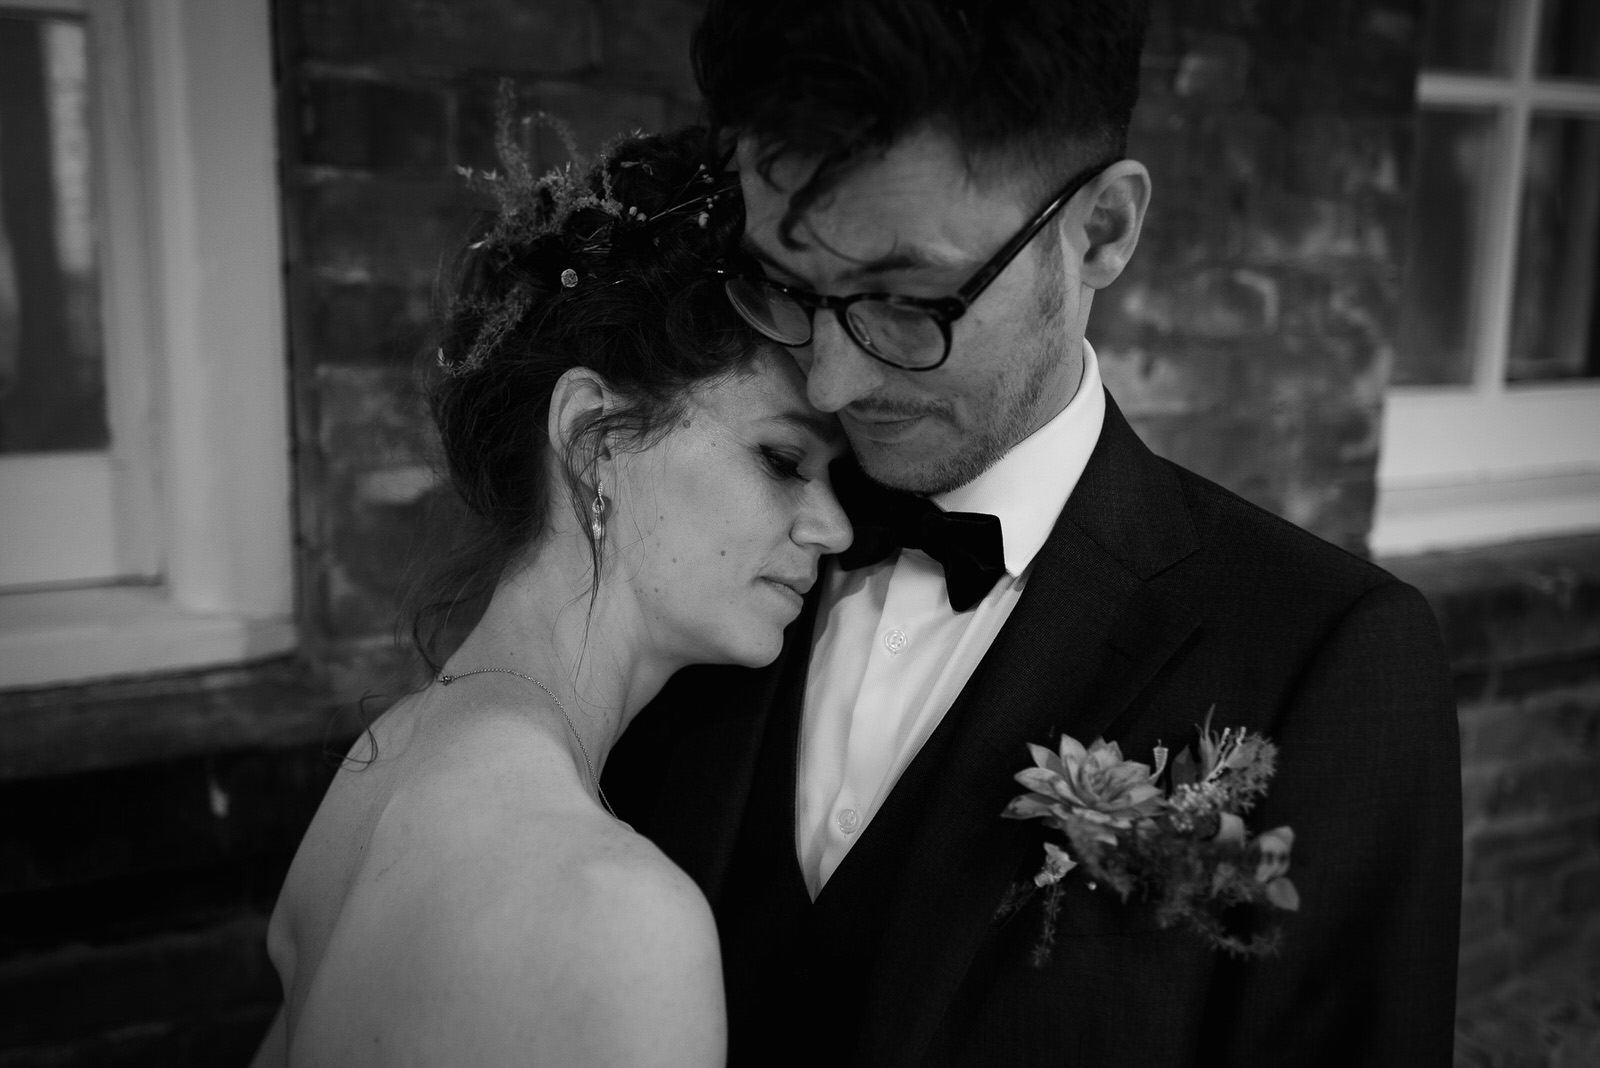 Bride and groom portraits in Battersea Arts Centre in London